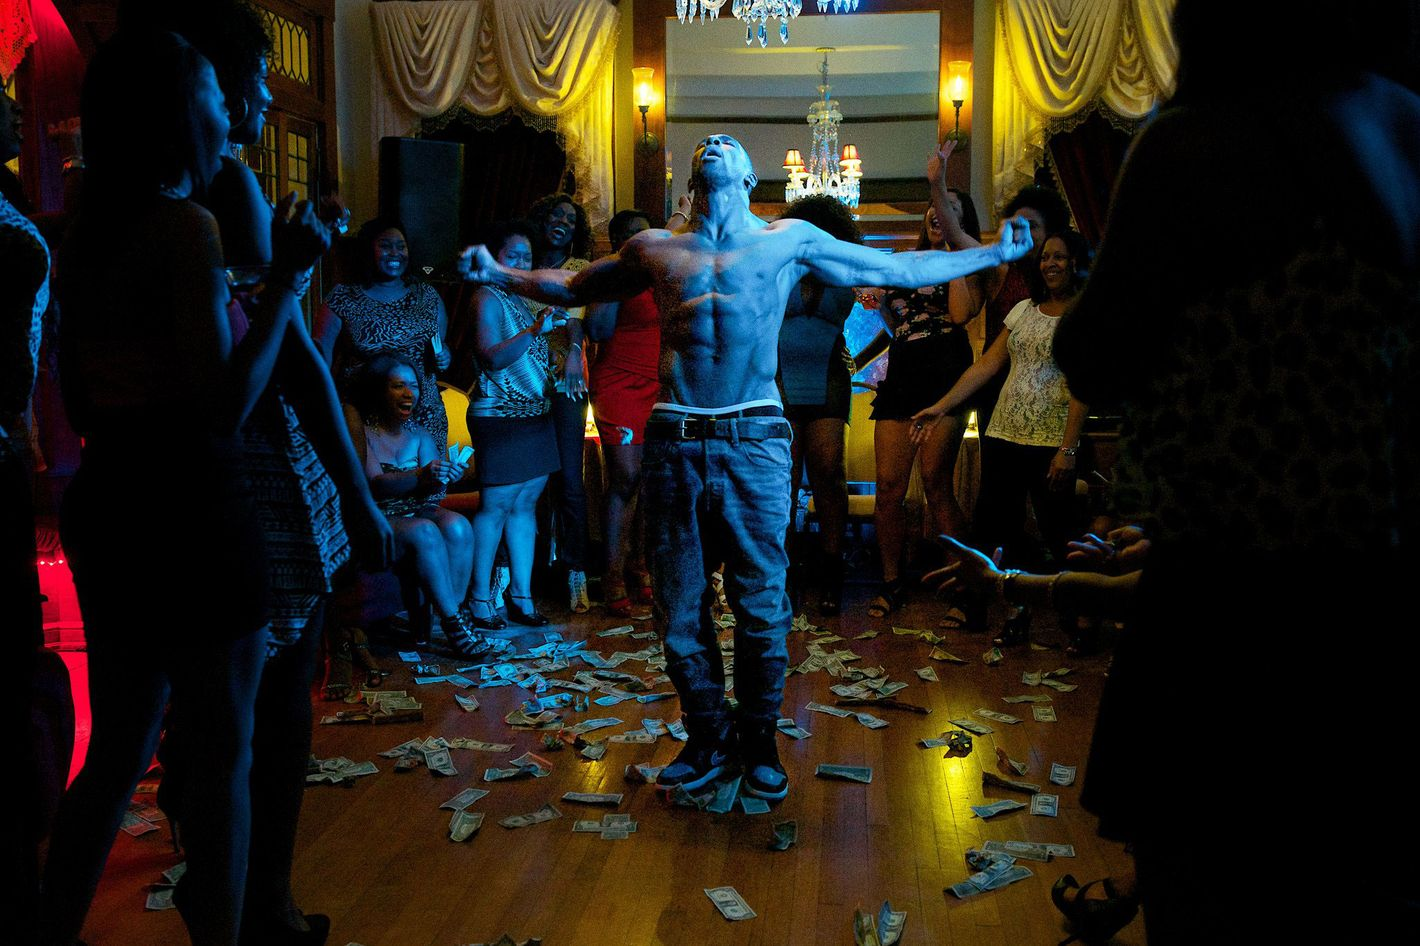 A Definitive Scorecard for All the Dances in Magic Mike XXL